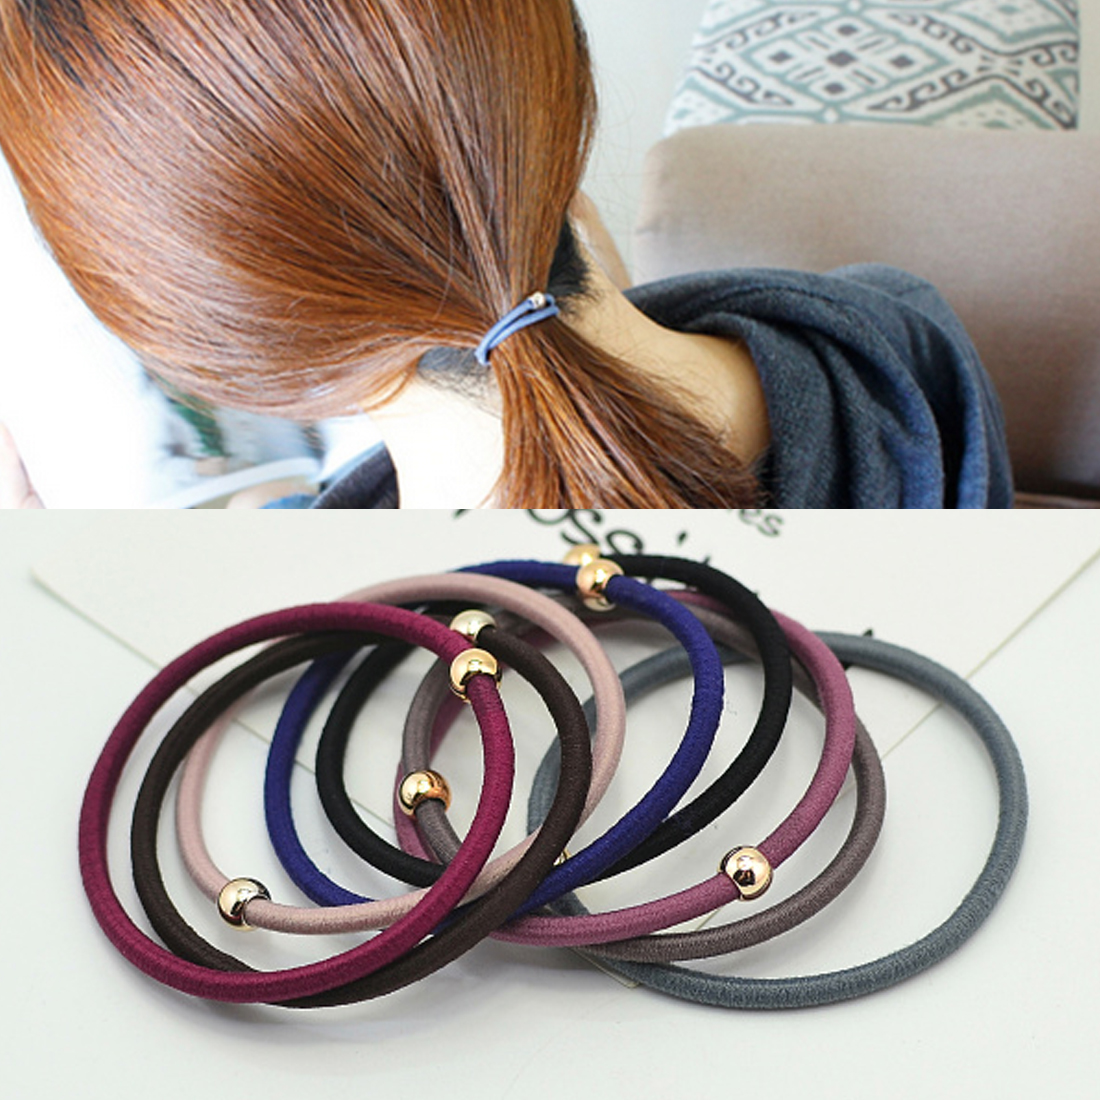 10PCS/Lot Simple Colorful Headband Gold Beans Hair Accessories Elastic Hair Bands Ponytail Holder Rubber Band Gum for Women Girl